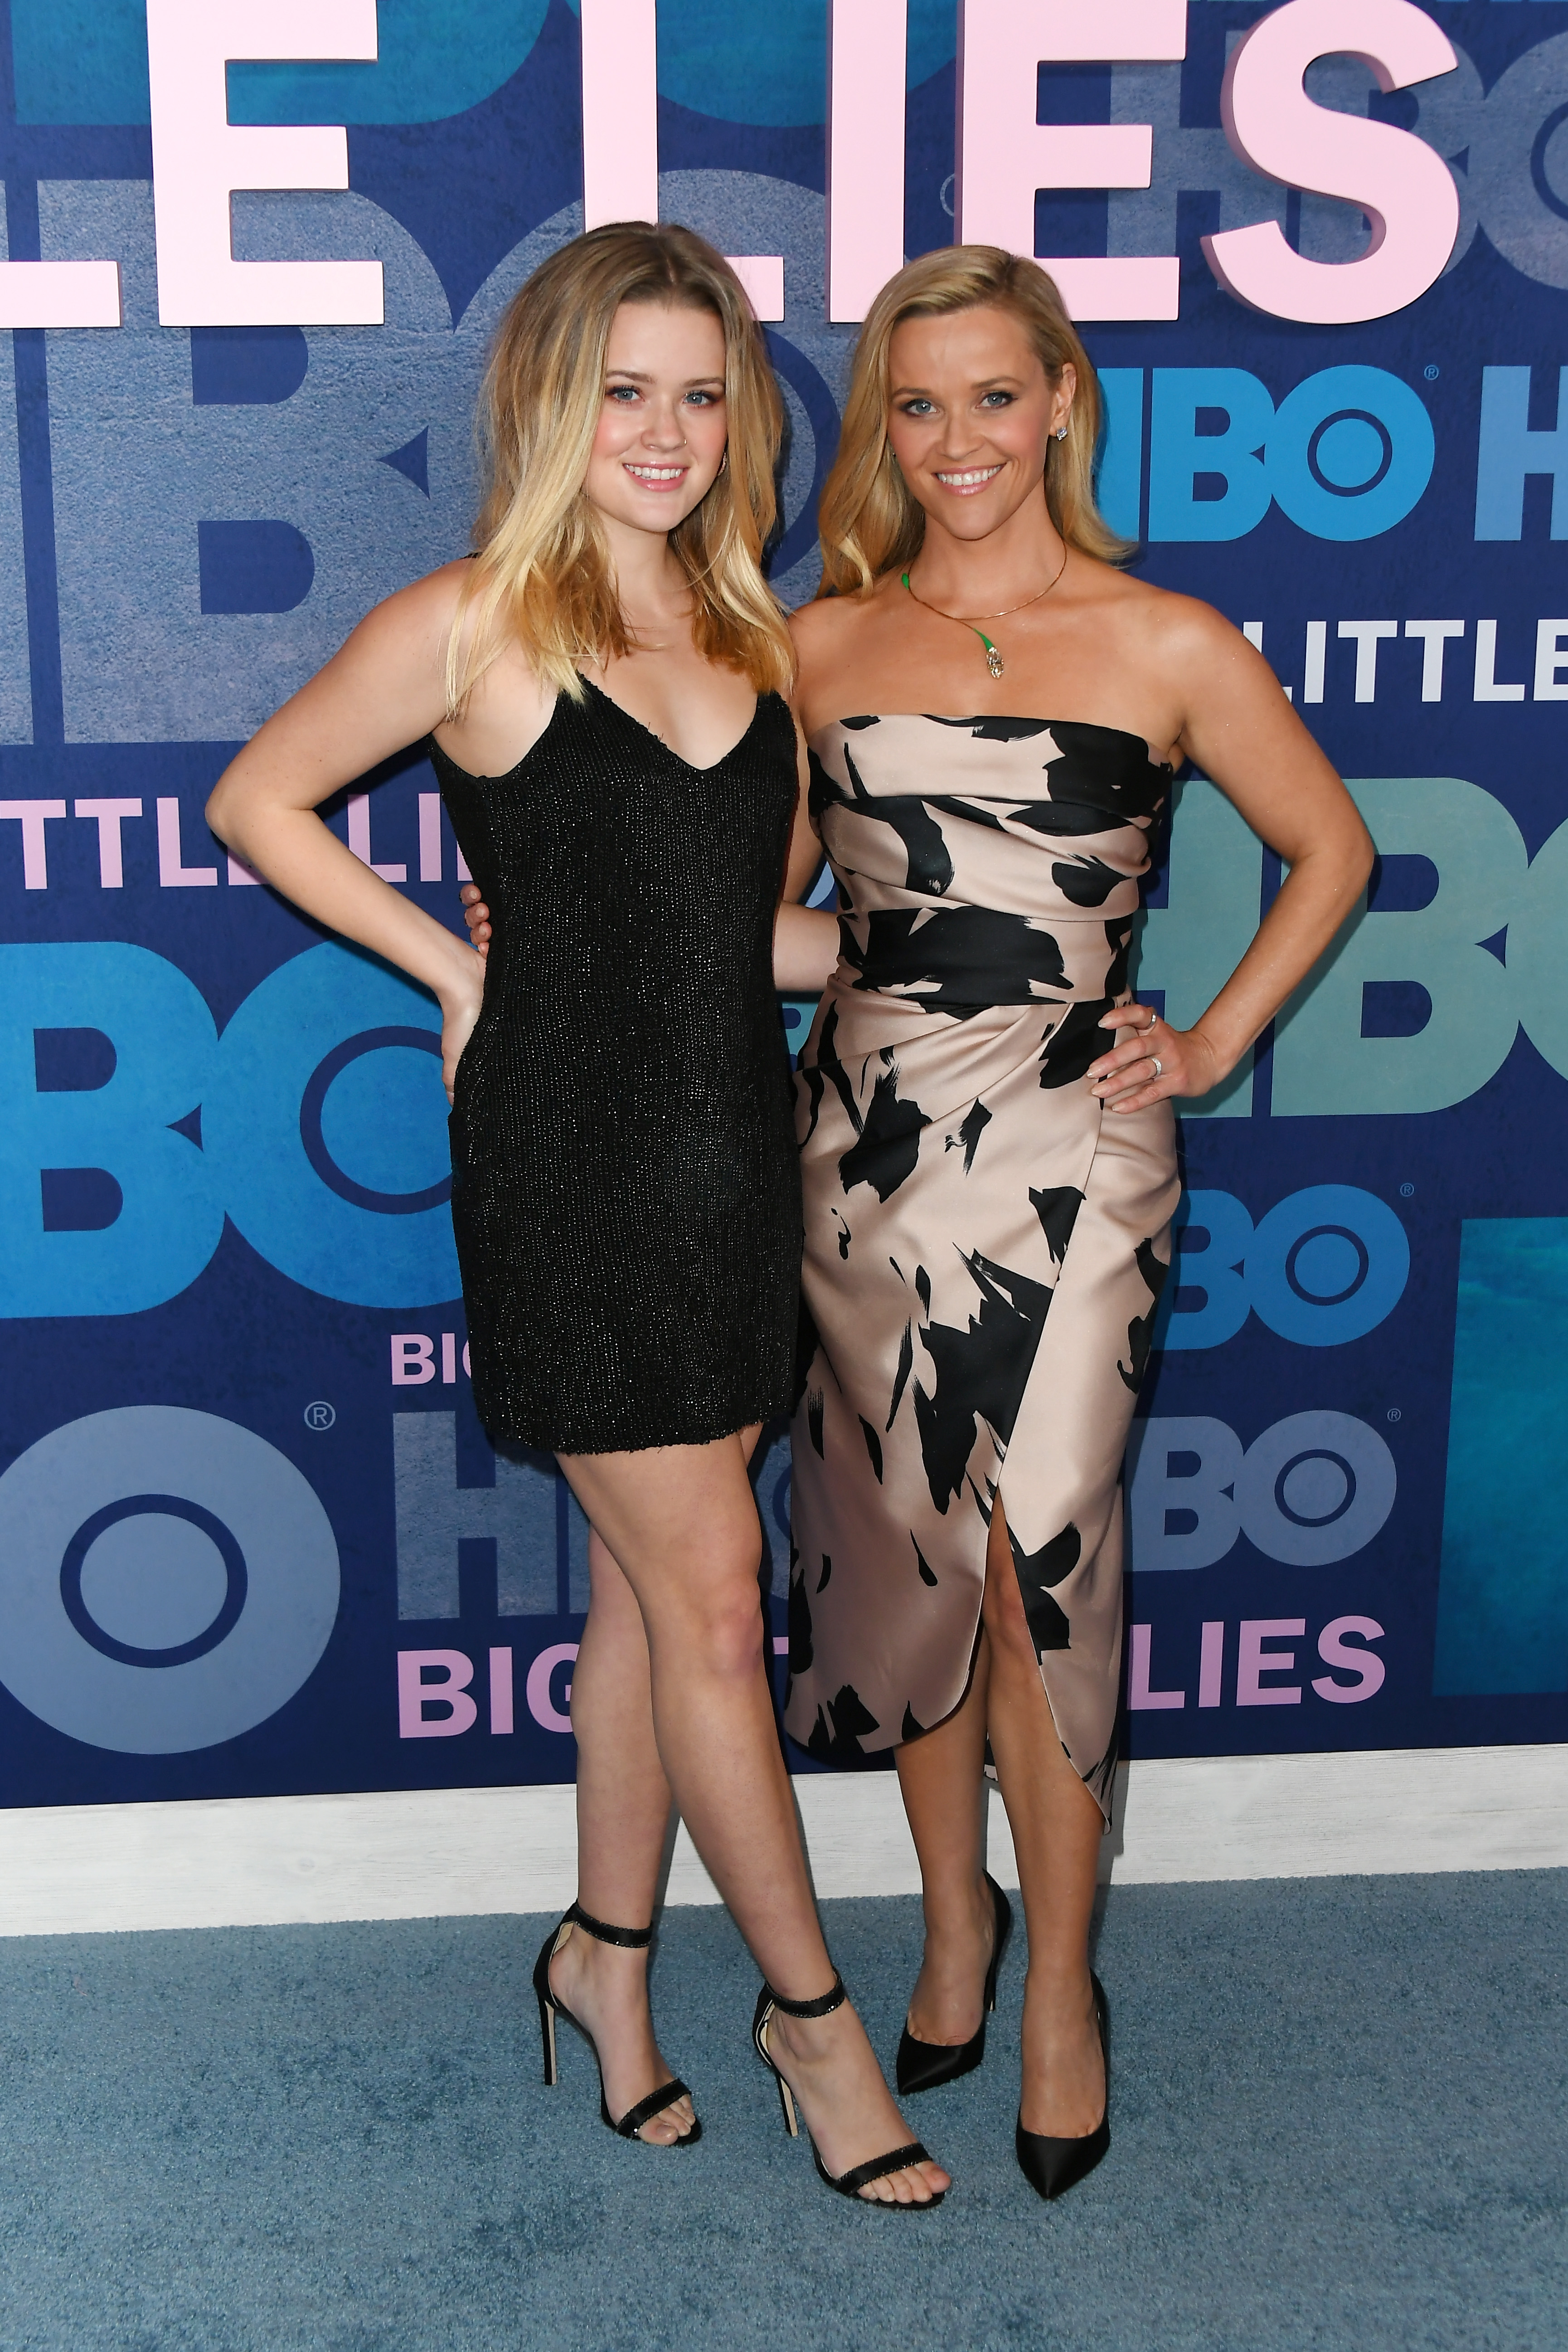 Ava Phillippe Reese Witherspoon  Big Little Lies  Season 2 Premiere